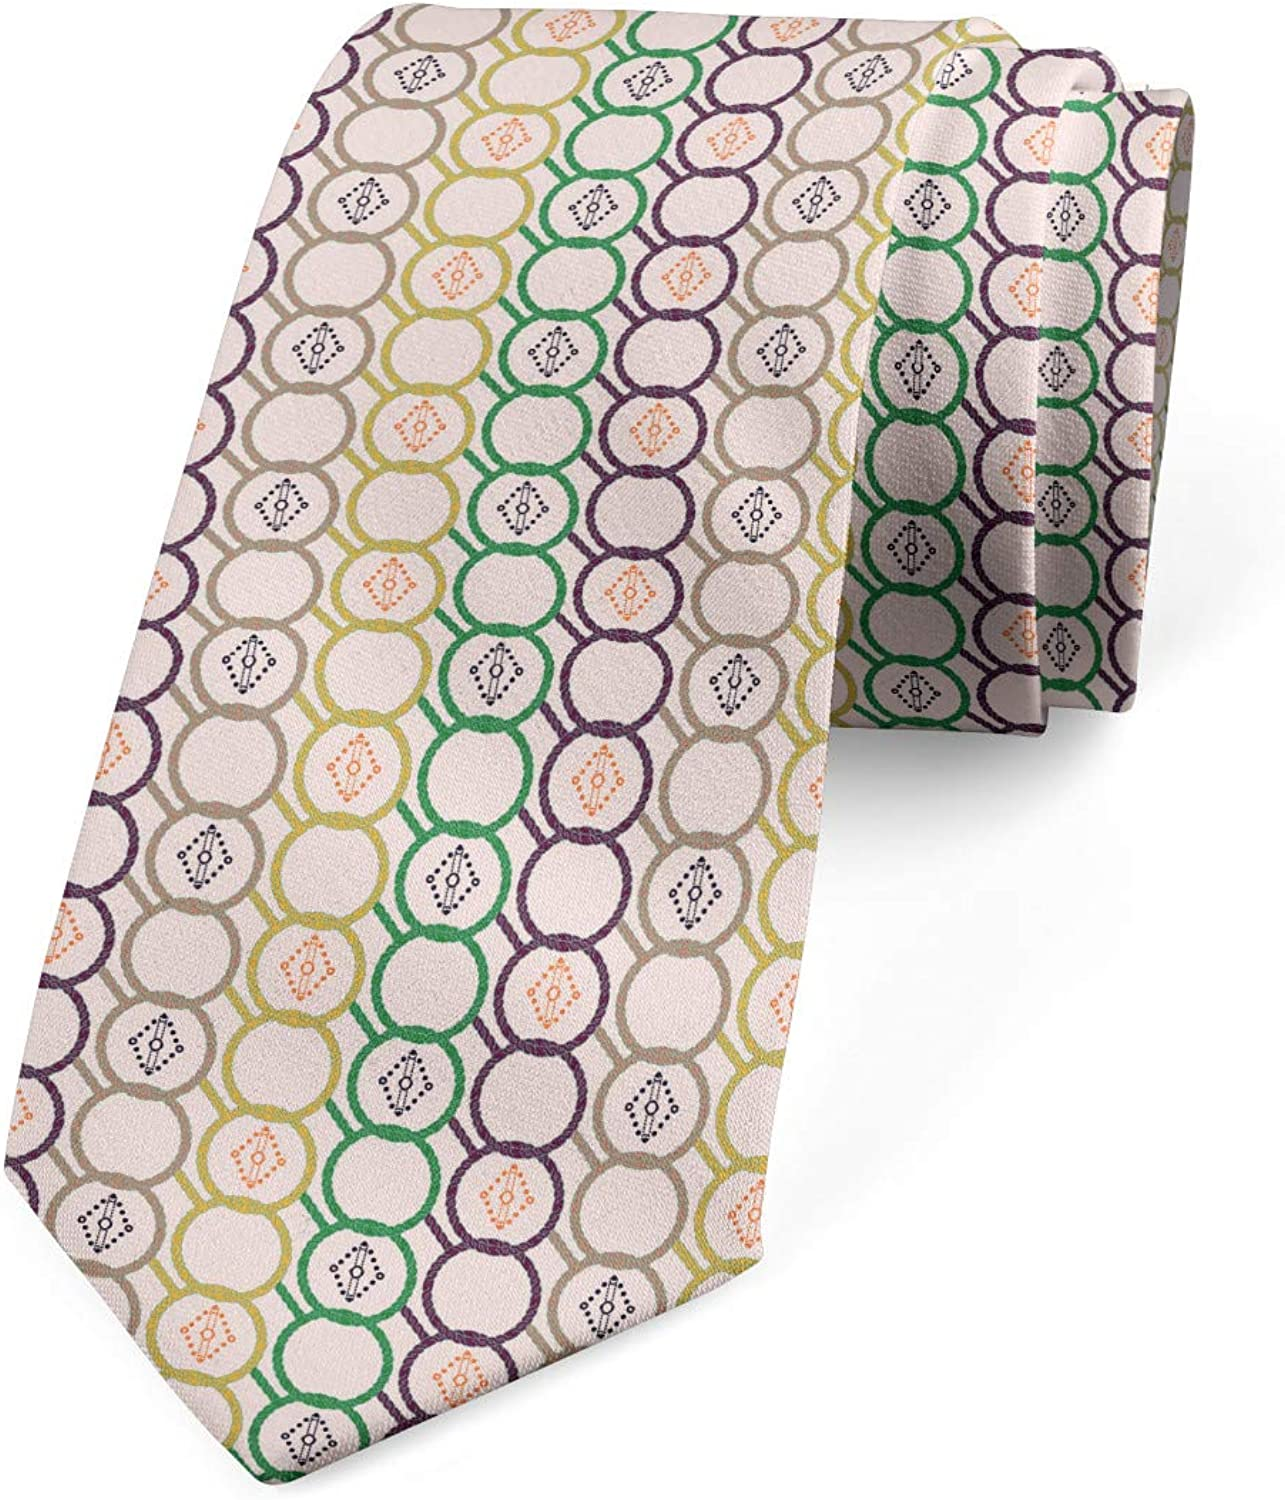 3.7 Ambesonne Mens Tie Pale Eggshell Multicolor Horizontal Linked Chain